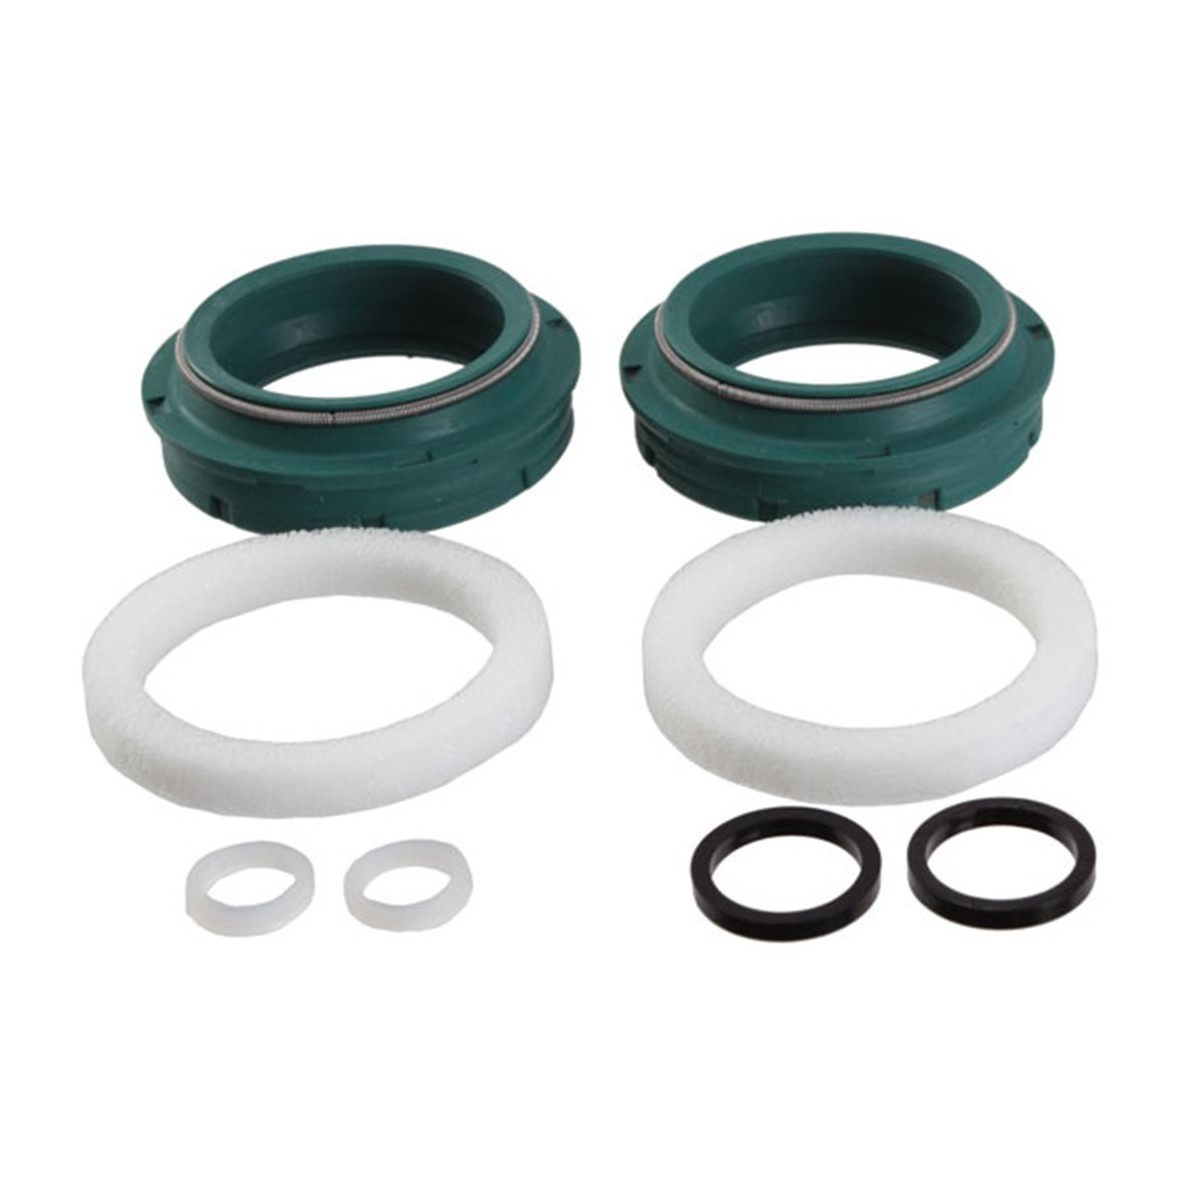 Enduro Bearings joints de fourche pour MARZOCCHI 30mm Fietsonderdelen joints spi FK-6606 NEUF